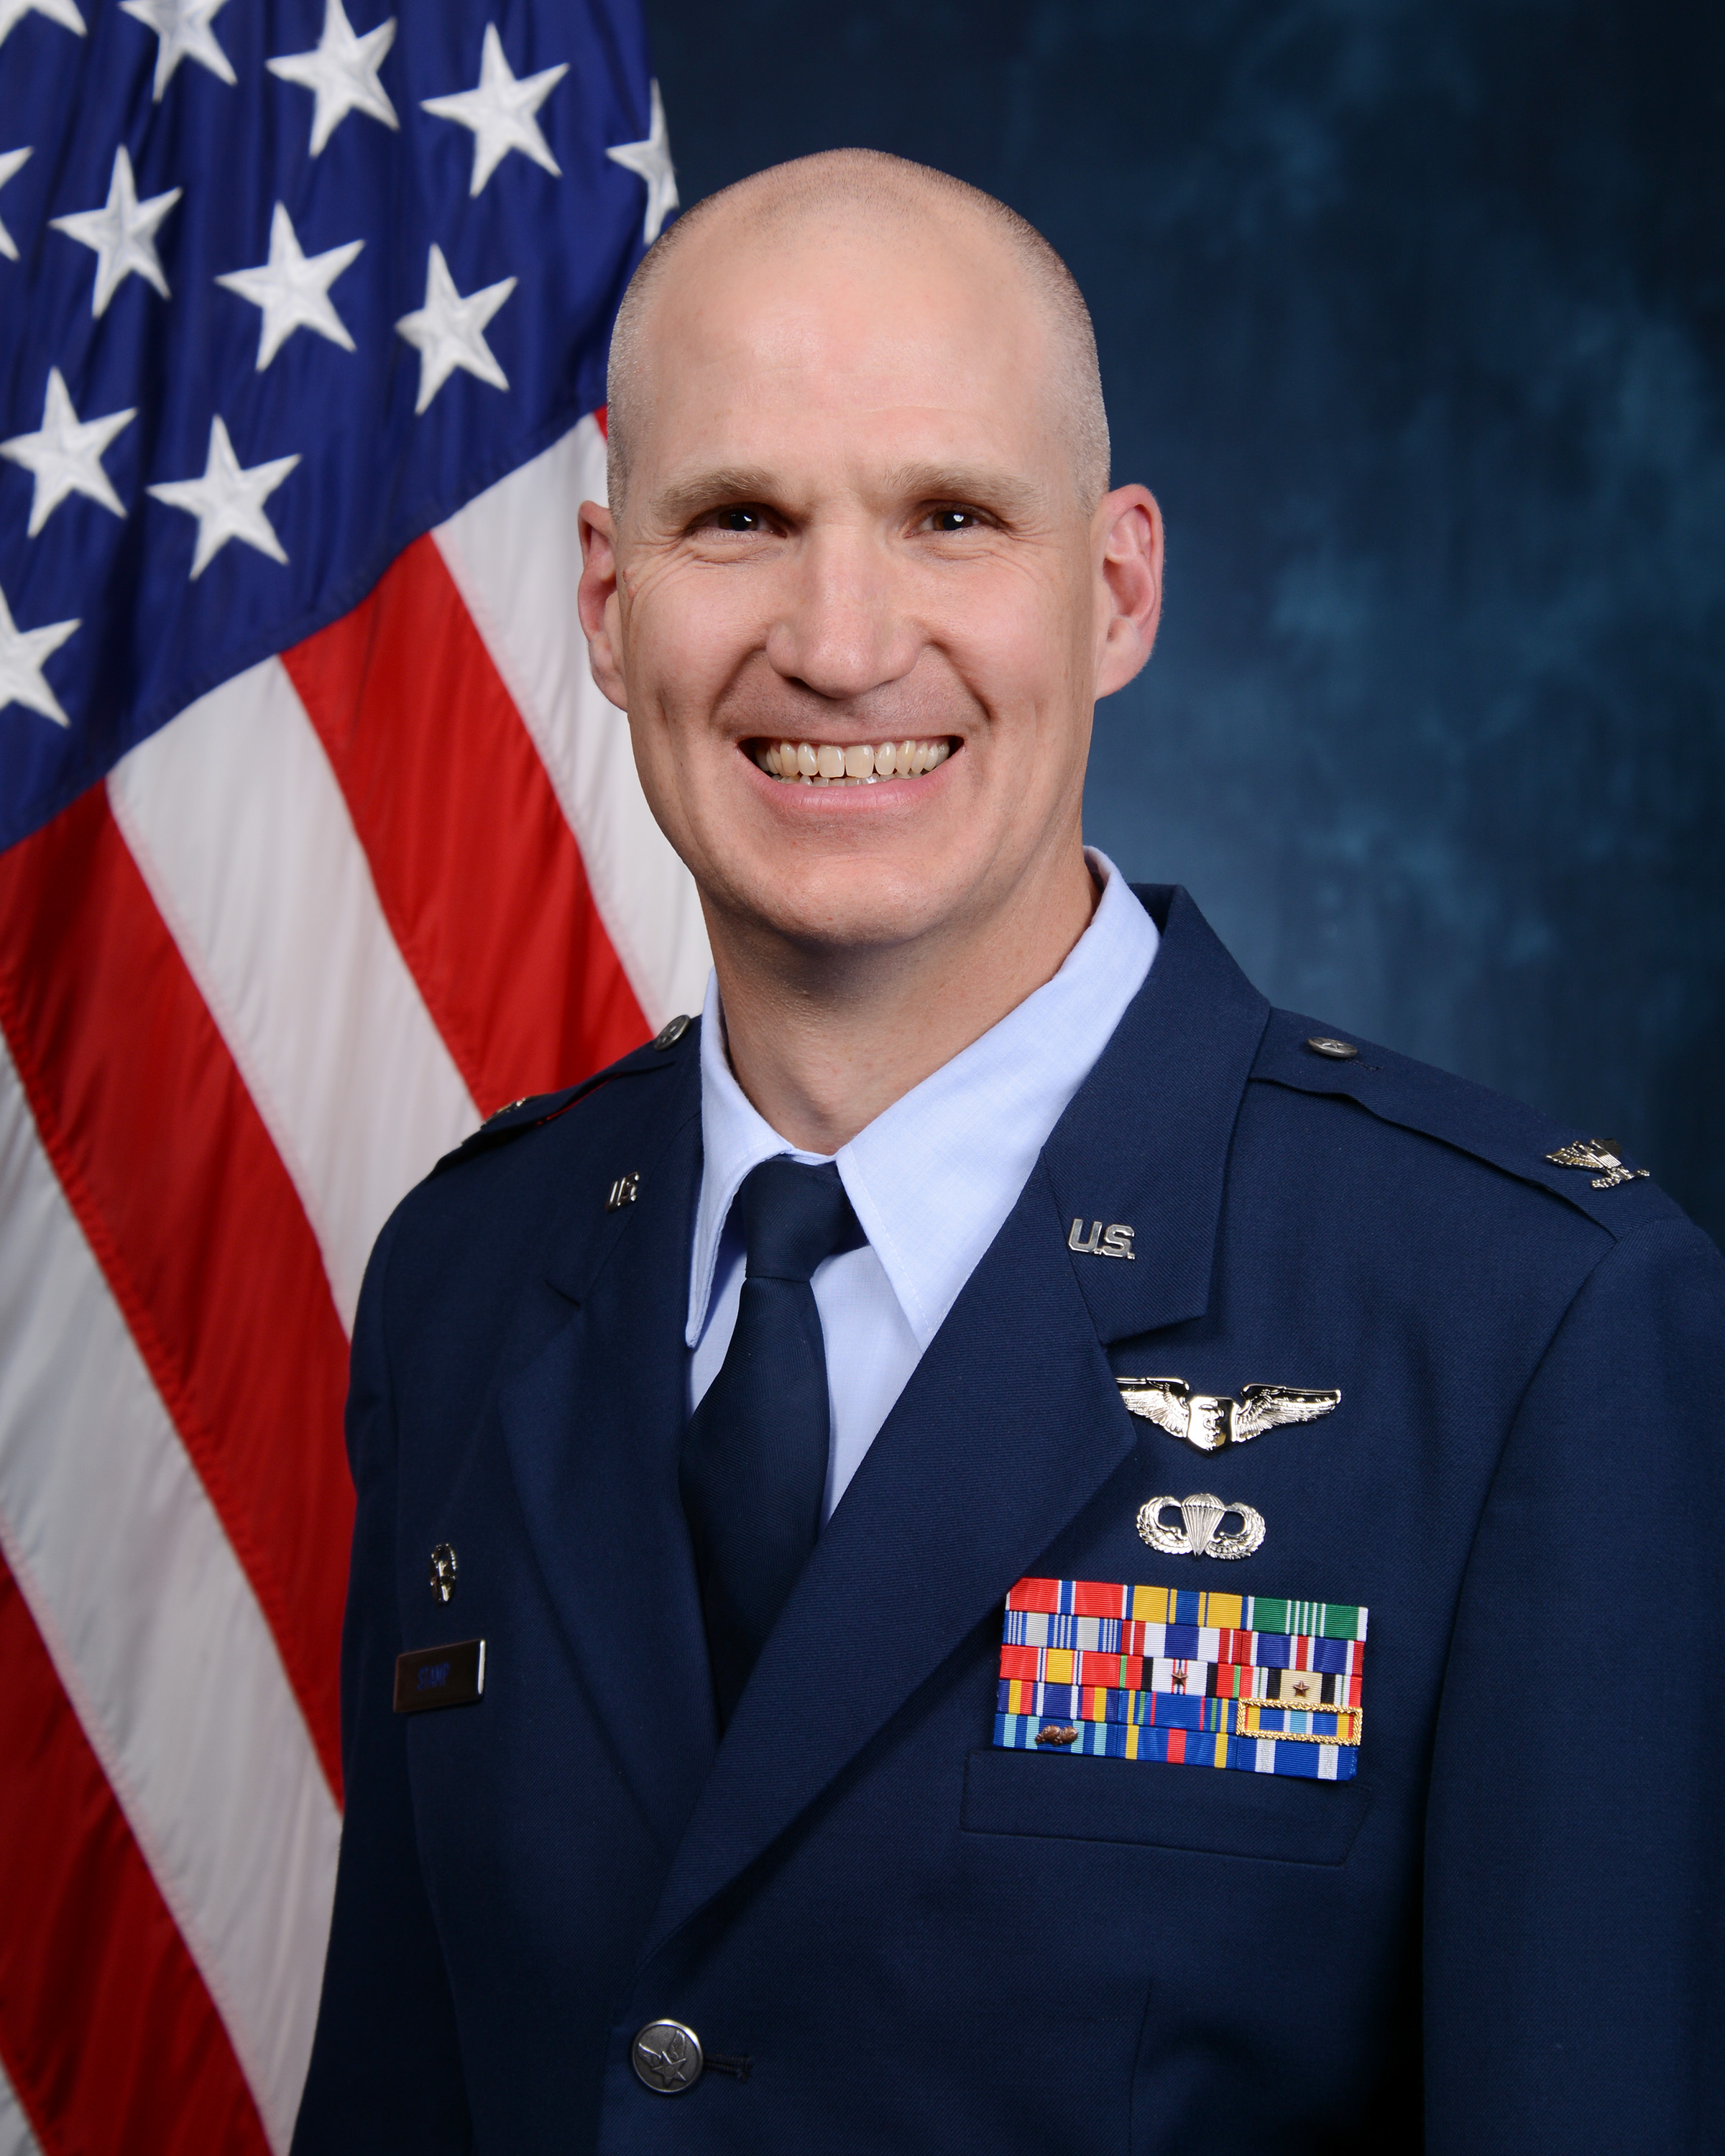 48th Medical Group Commander